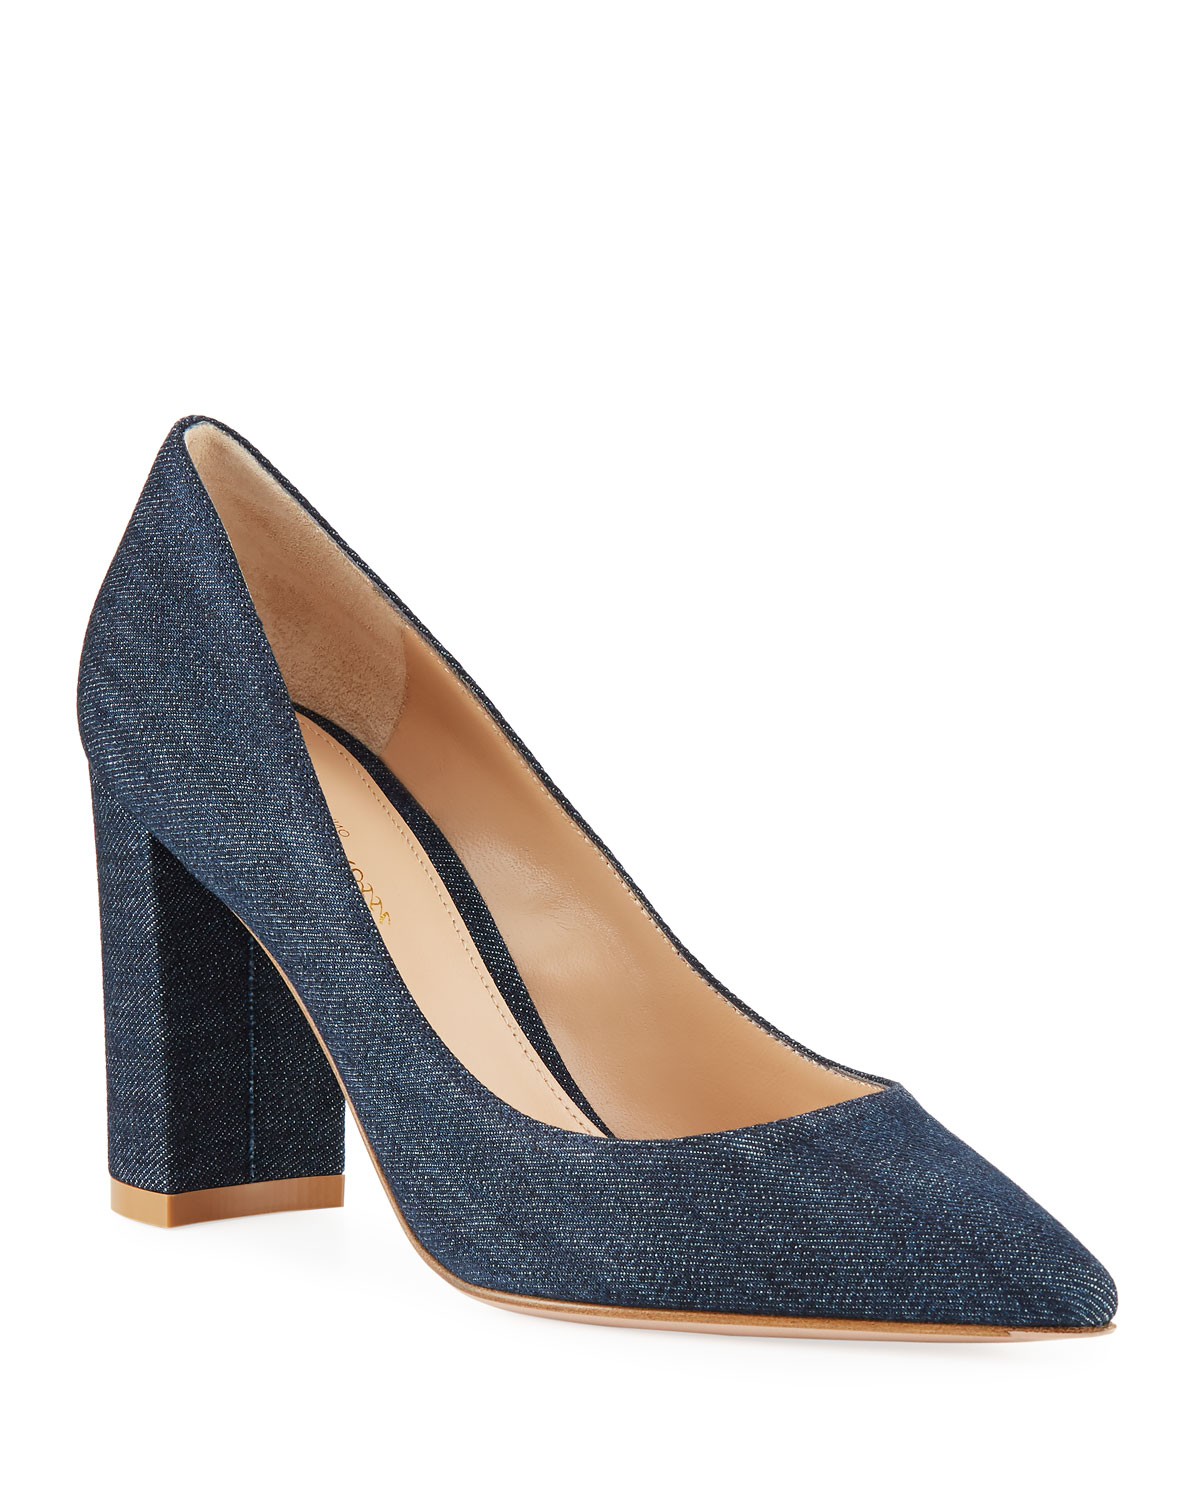 b3c0ebe49ae4 Gianvito Rossi Denim Pointed-Toe Pumps with Chunky Heel